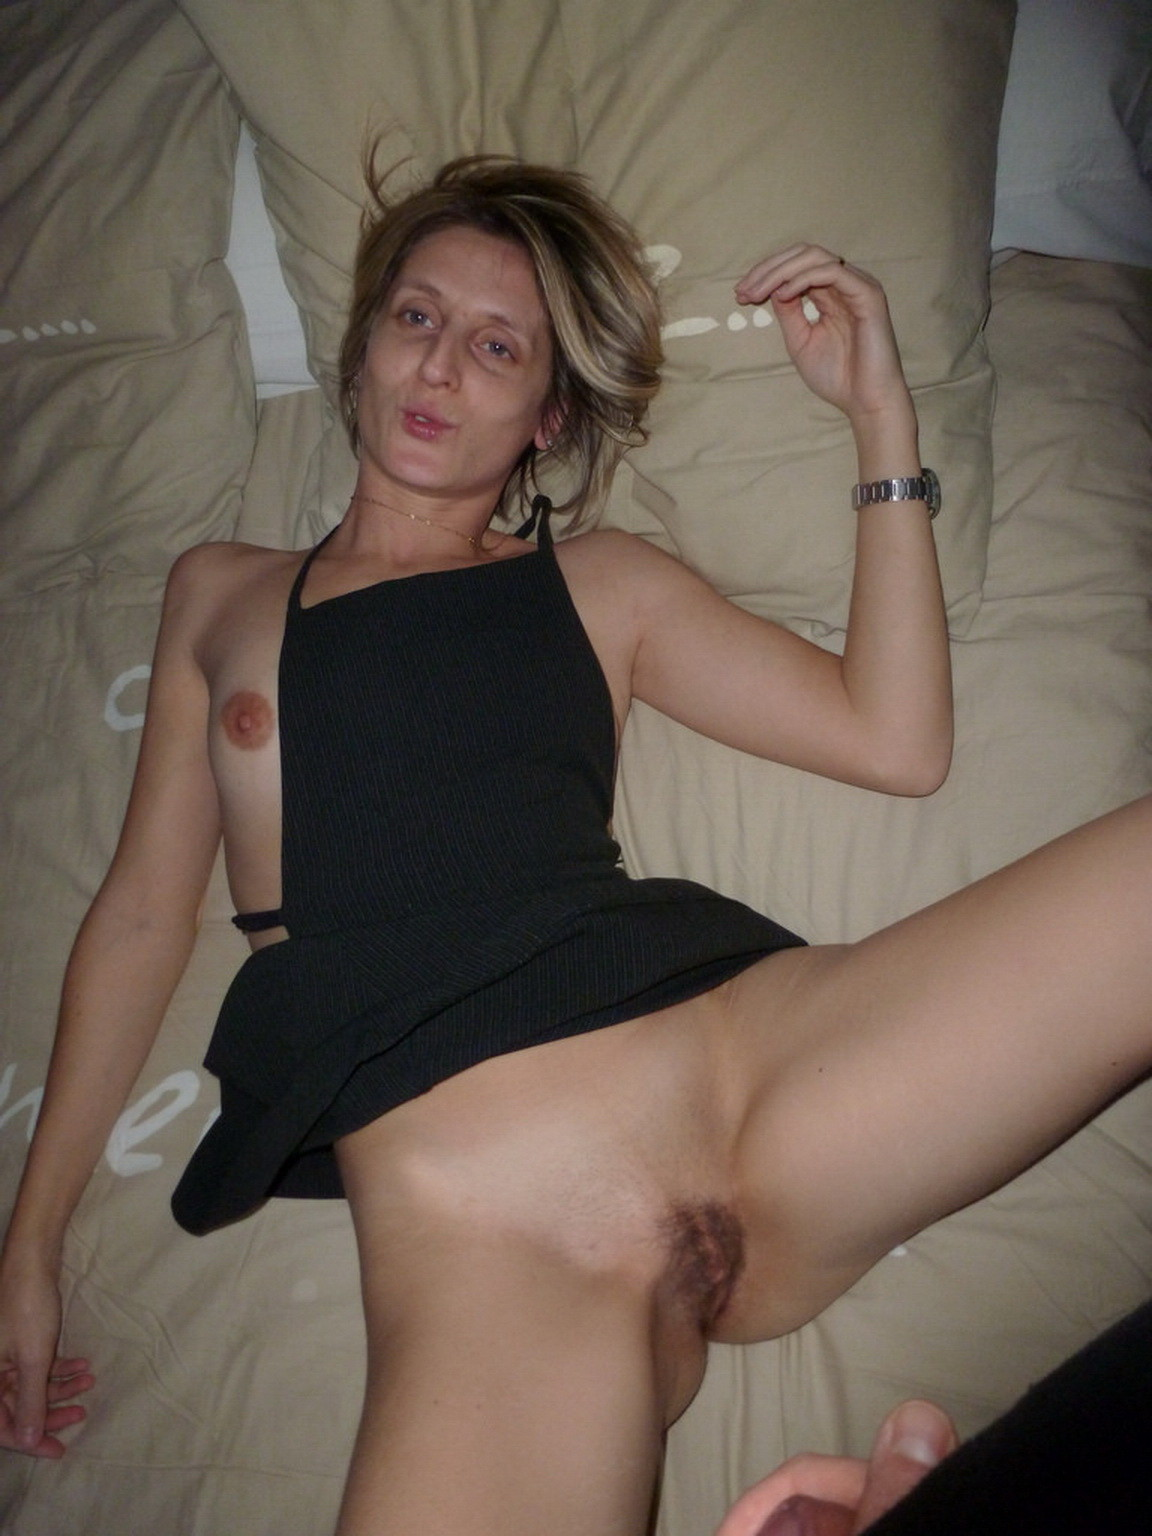 Desi wife naked tumblr